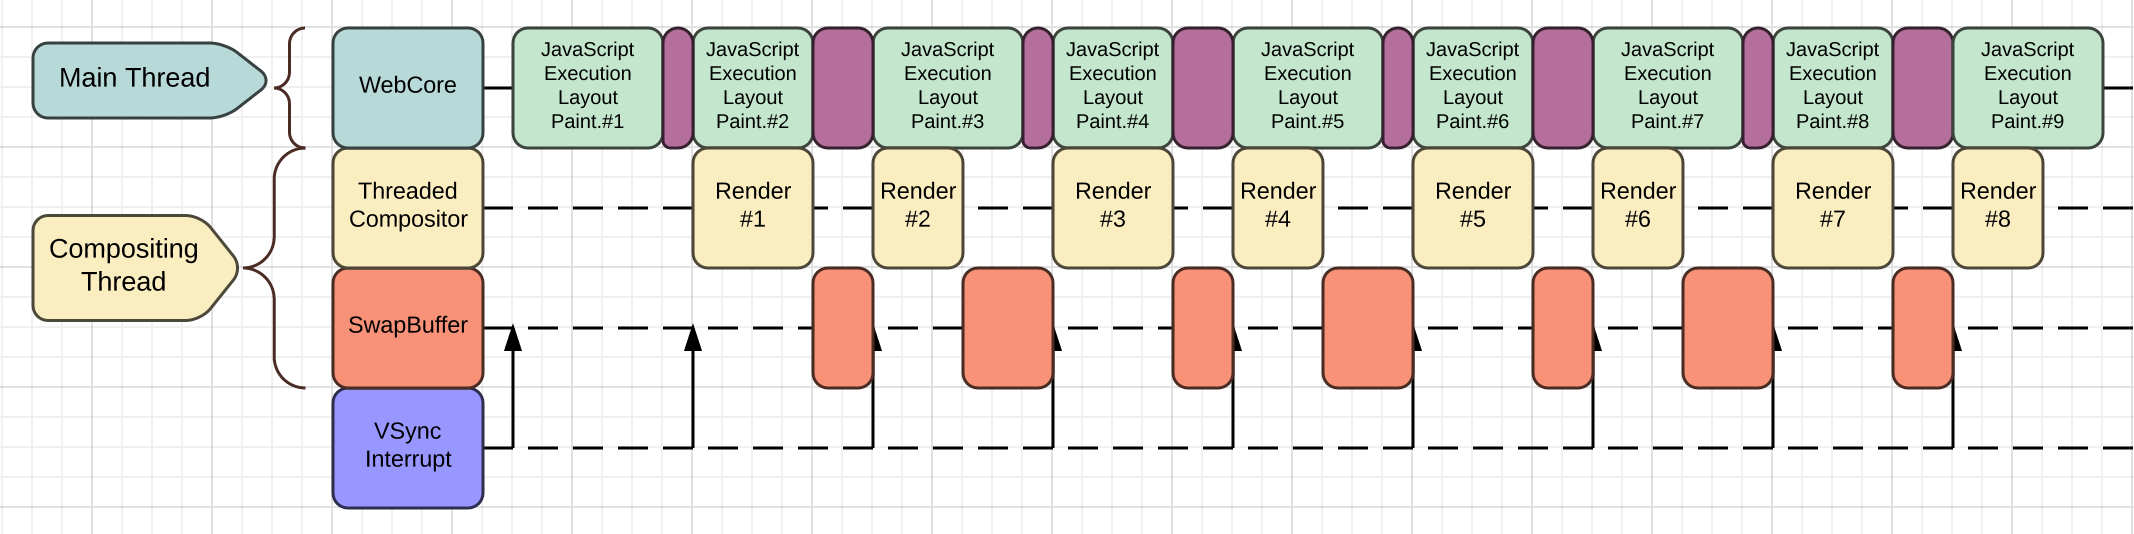 A diagram to visualize rendering pipeline of the Threaded Compositor.